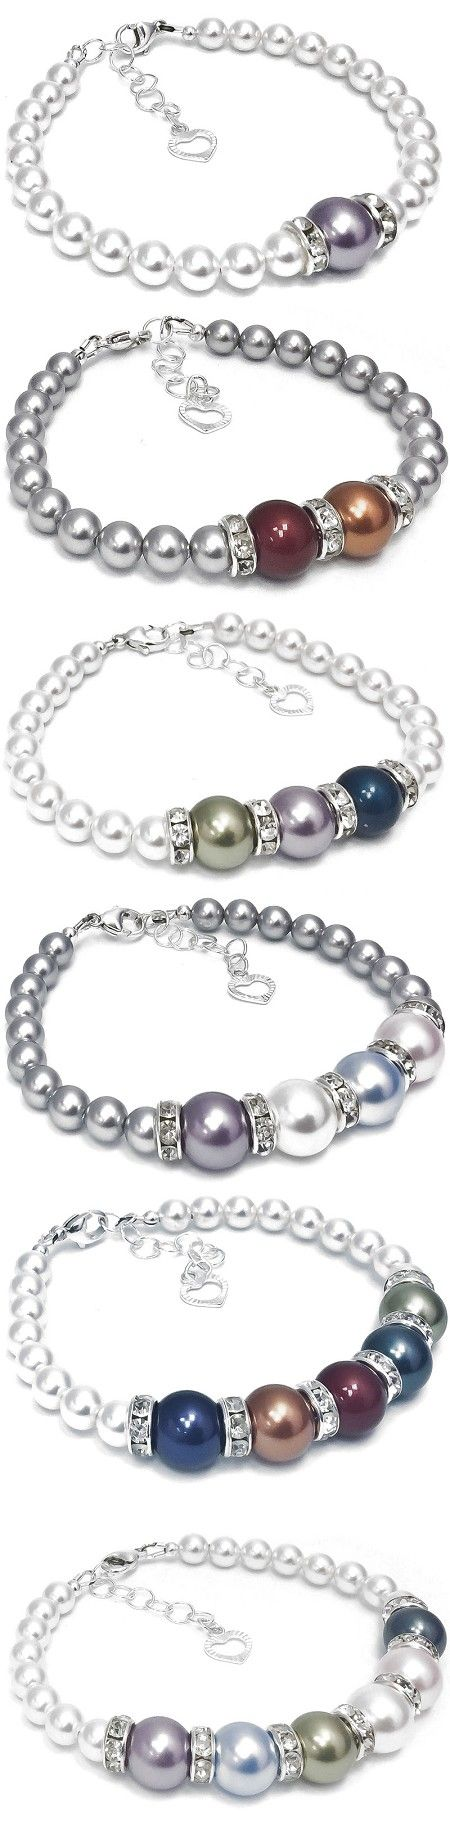 Swarovski Pearl Mother's Bracelet Kit